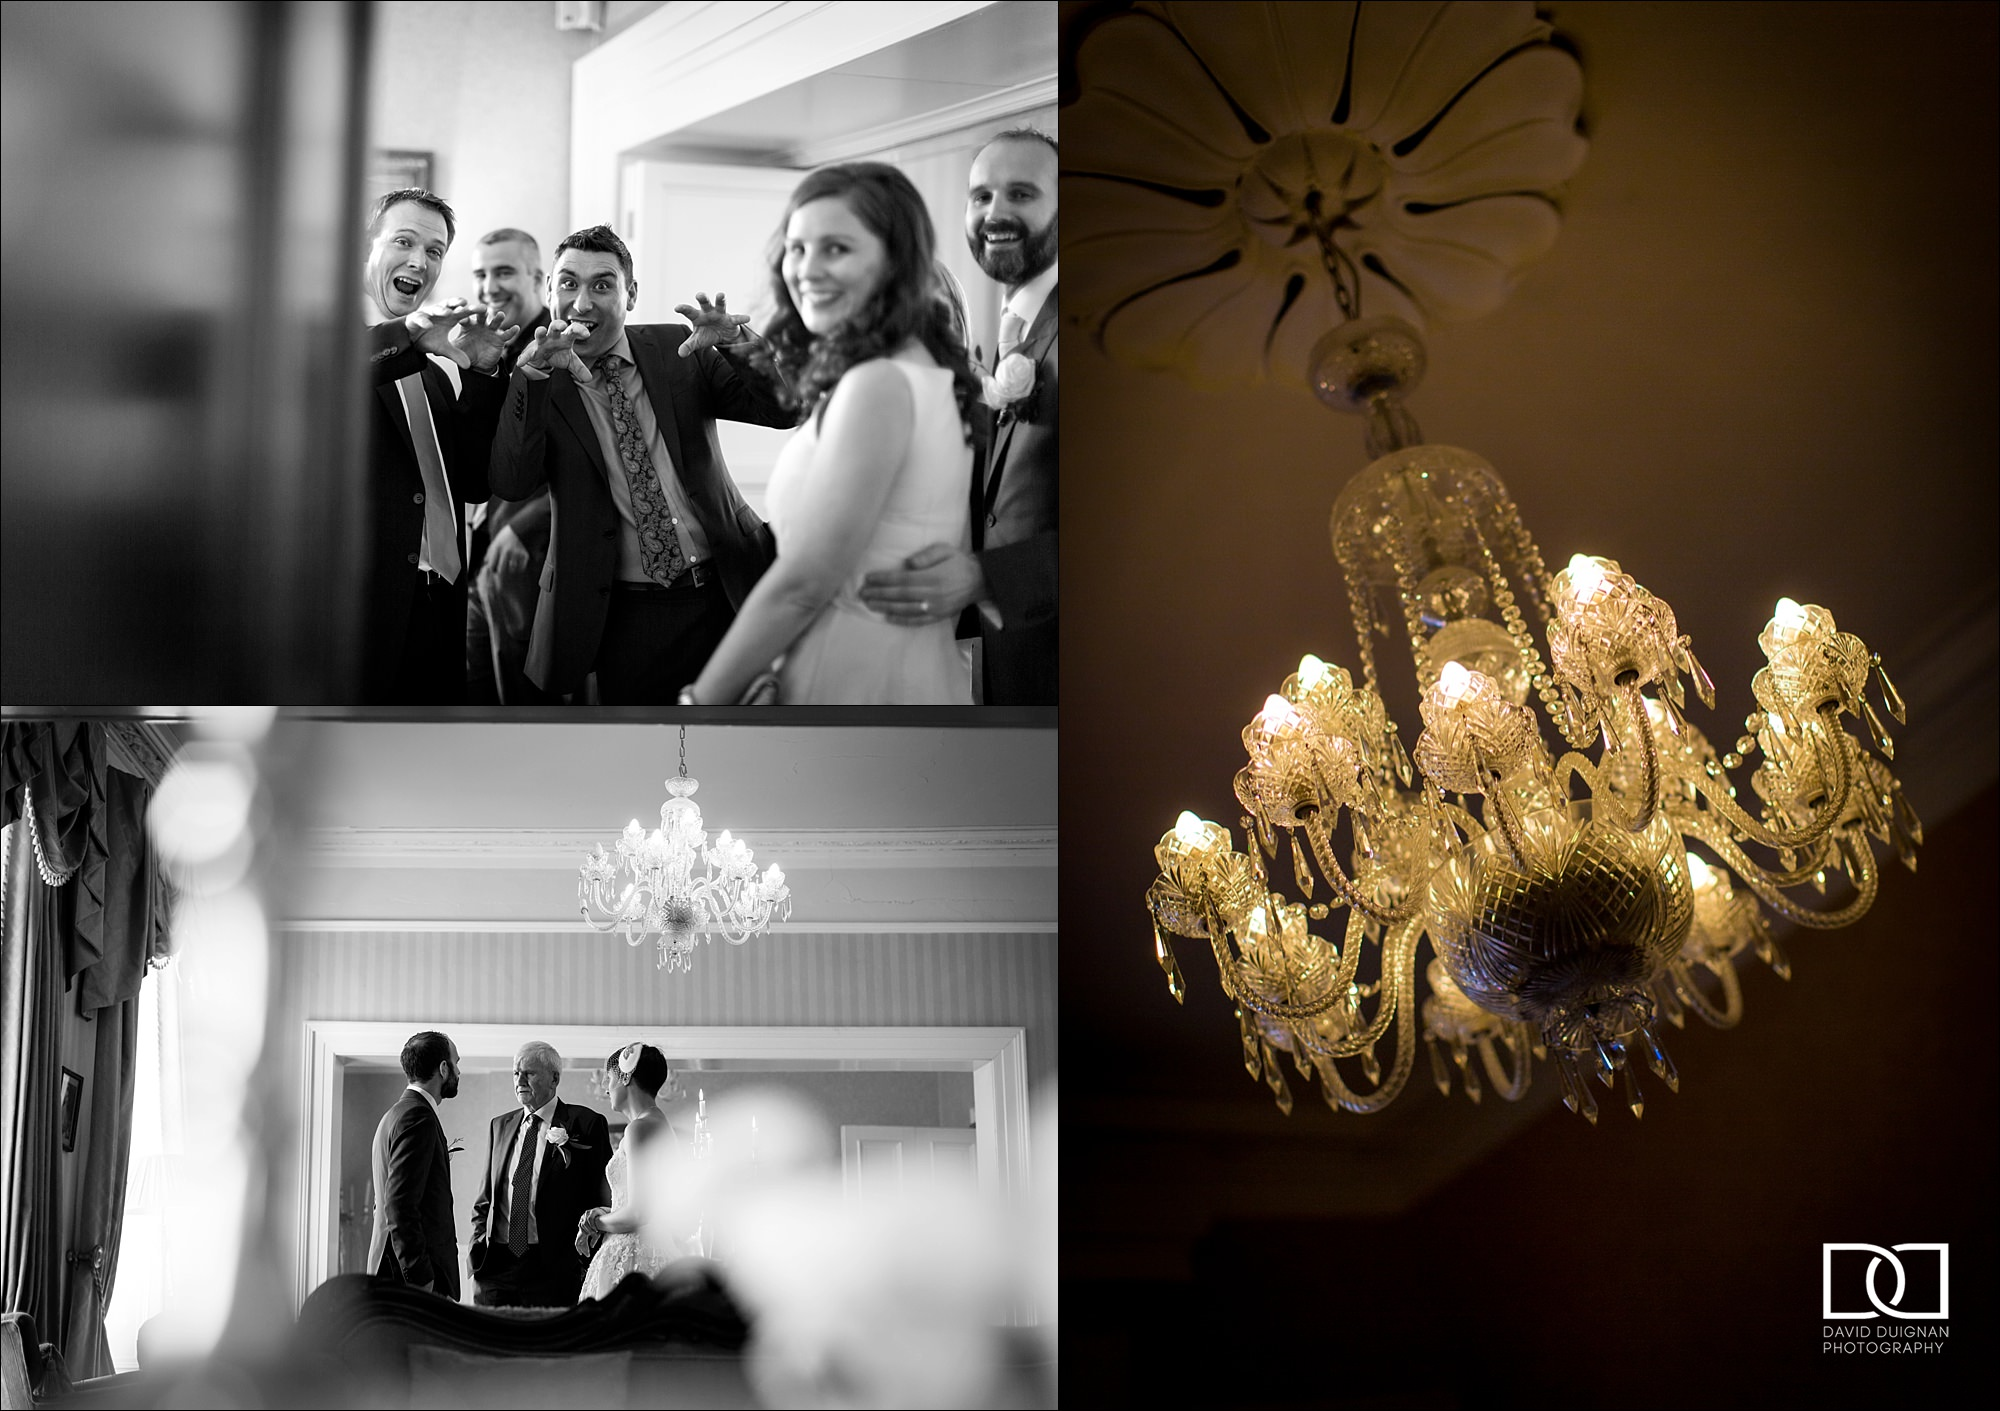 dublin wedding photographer david duignan photography horetown house wedding wexford Ireland 0044